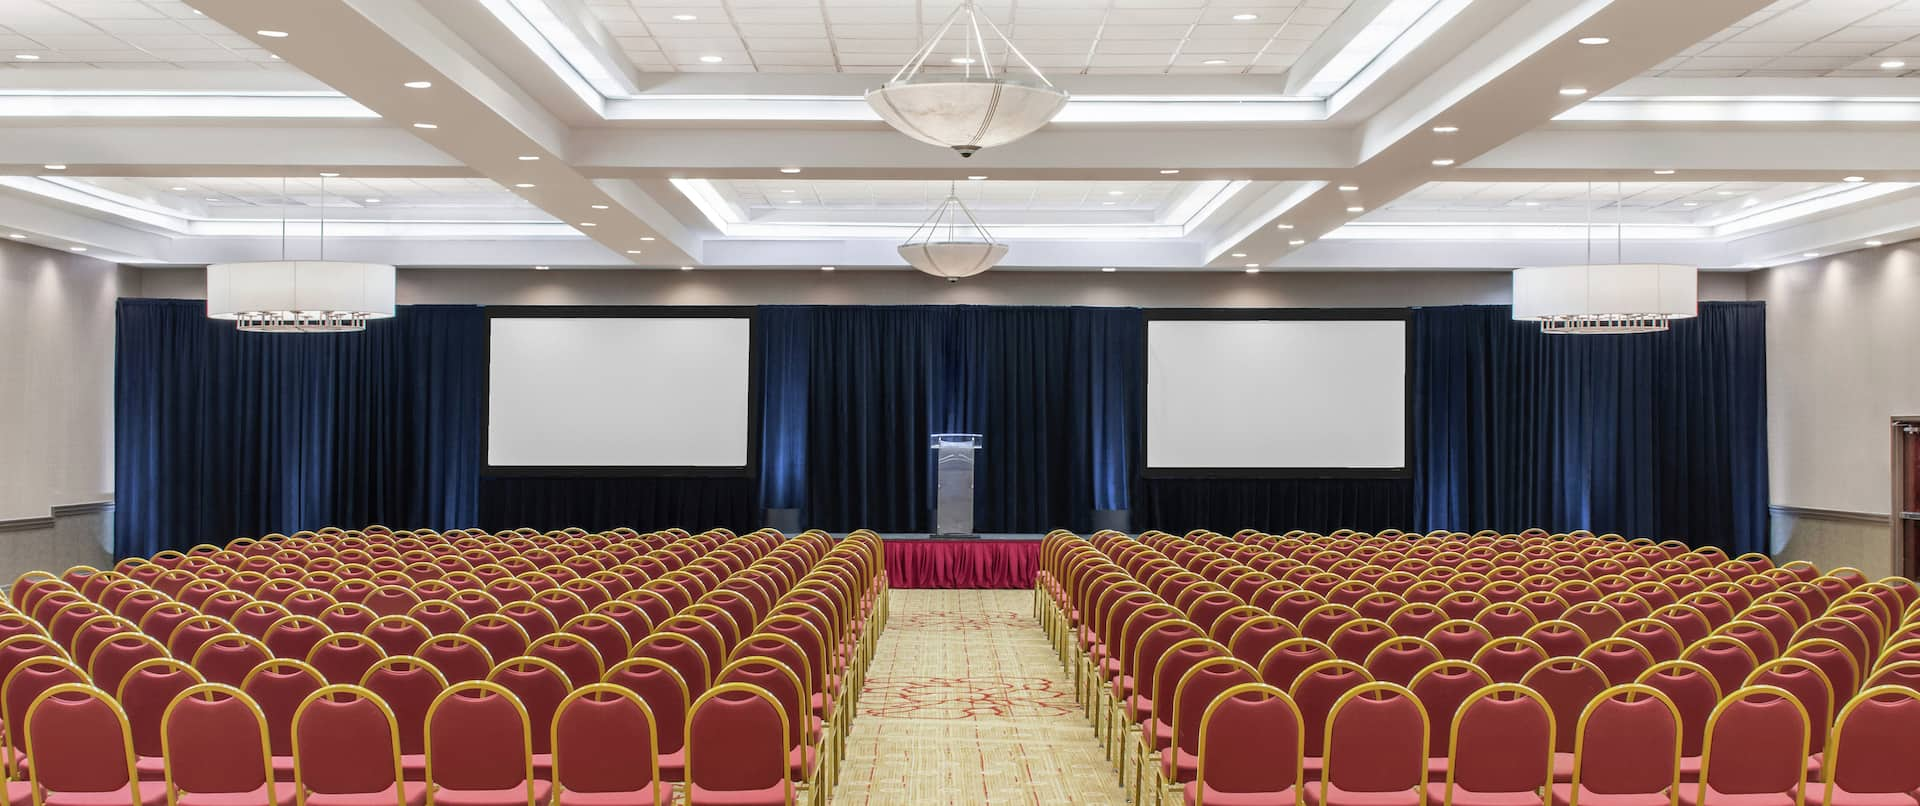 rows of chairs facing presentation screens in a conference room